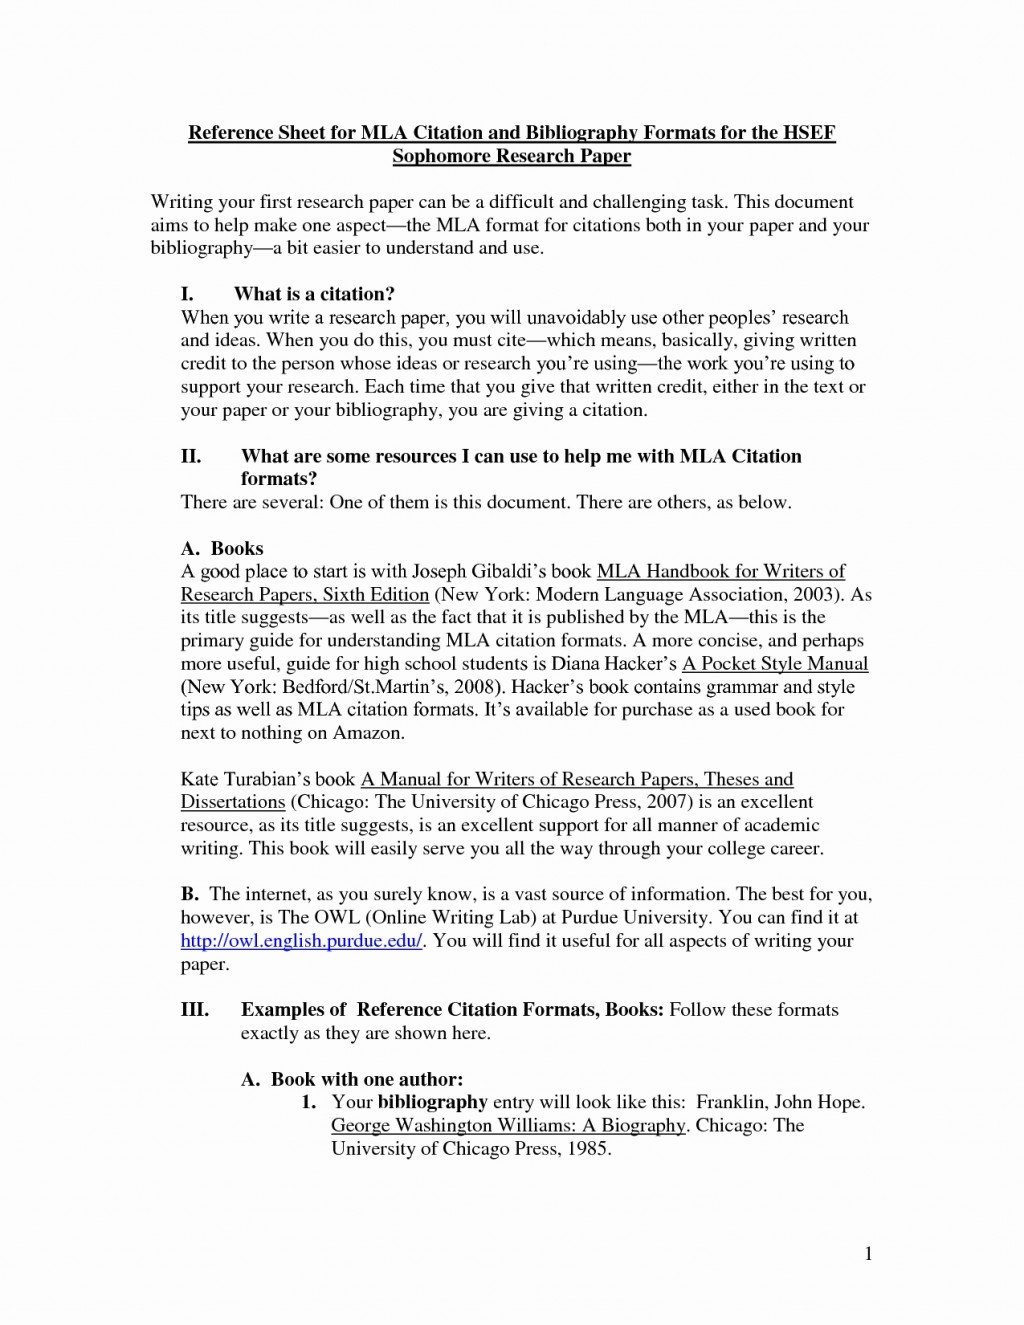 027 Research Paper How To Cite In Extraordinary Examples Of Citing Sources An Essay Photo Inspirations References For Resume Template Reference Format Awesome Fascinating A With No Author Mla Style Example Large